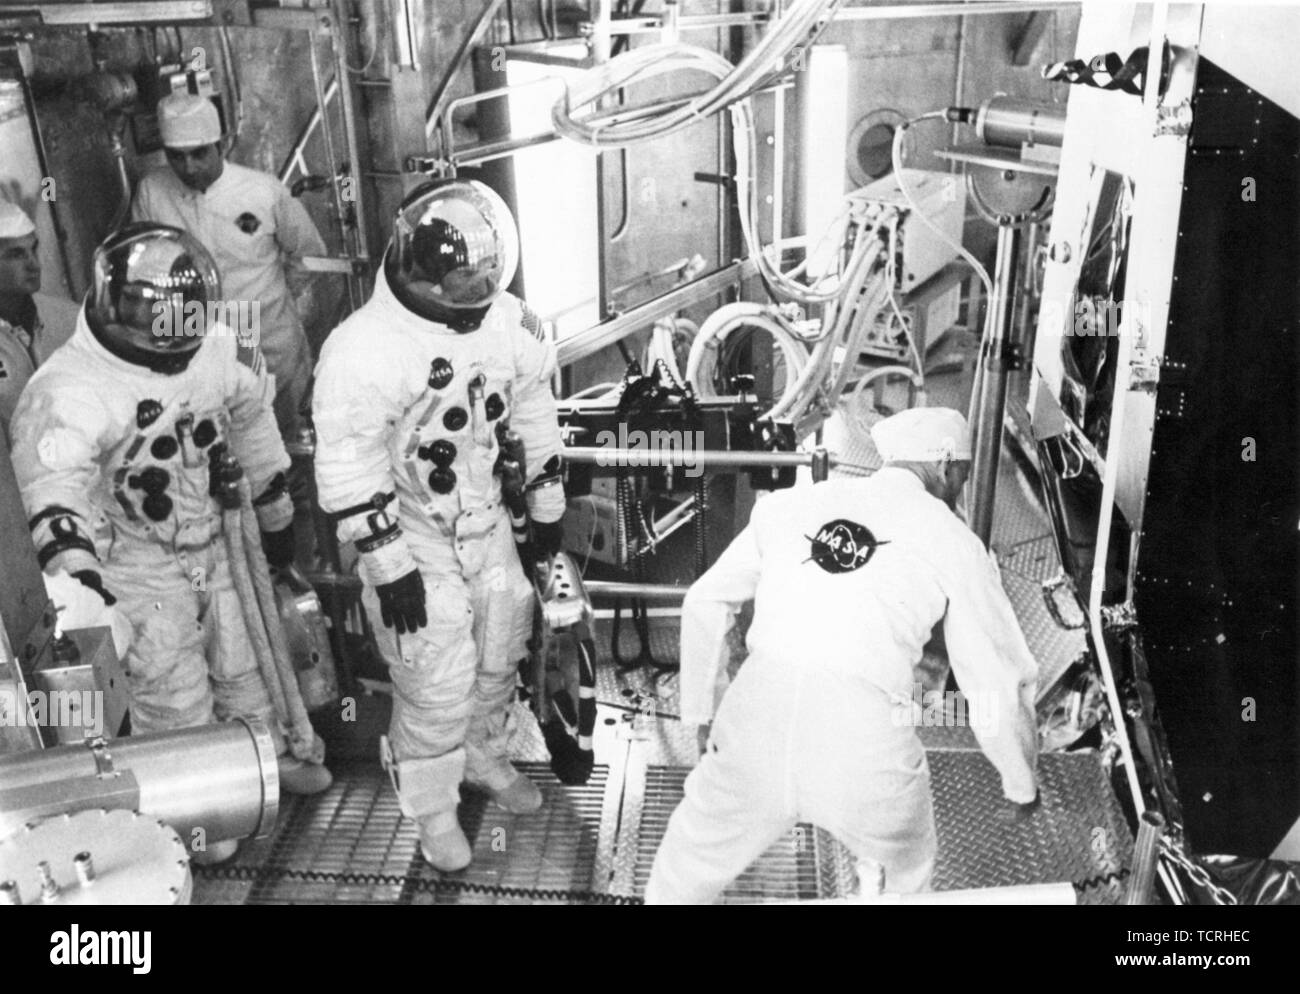 Apollo 11 backup crew members Fred Haise (left) and Jim Lovell prepare to enter the Lunar Module for an altitude test. - Stock Image